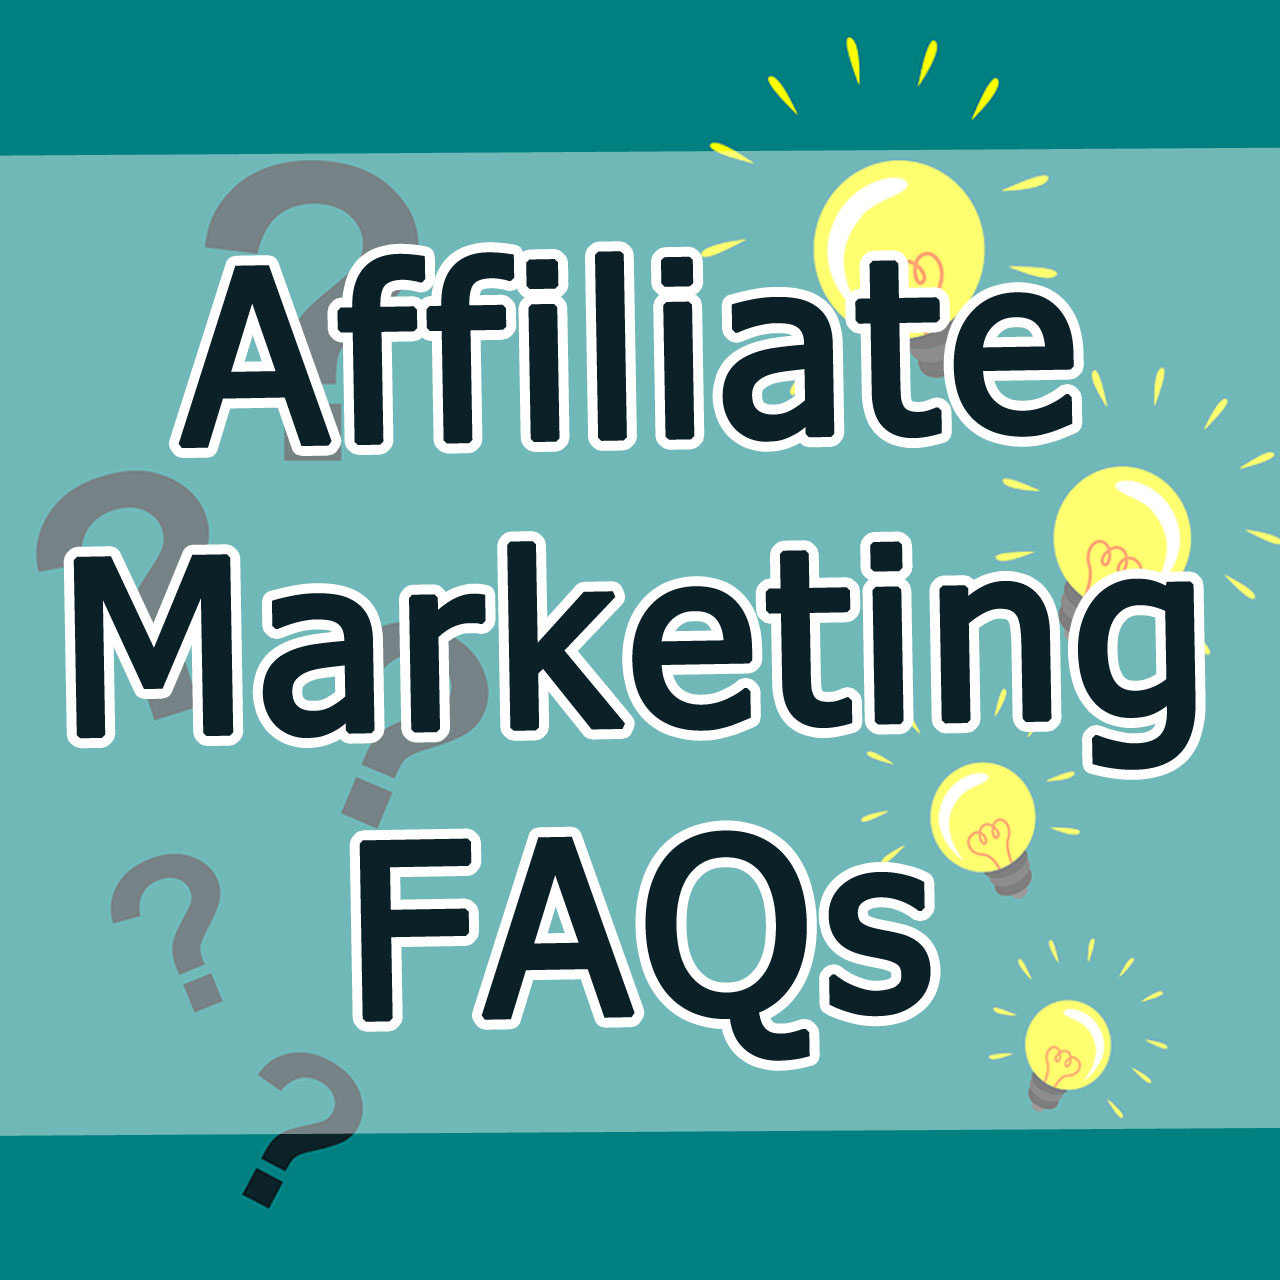 Affiliate Marketing FAQs